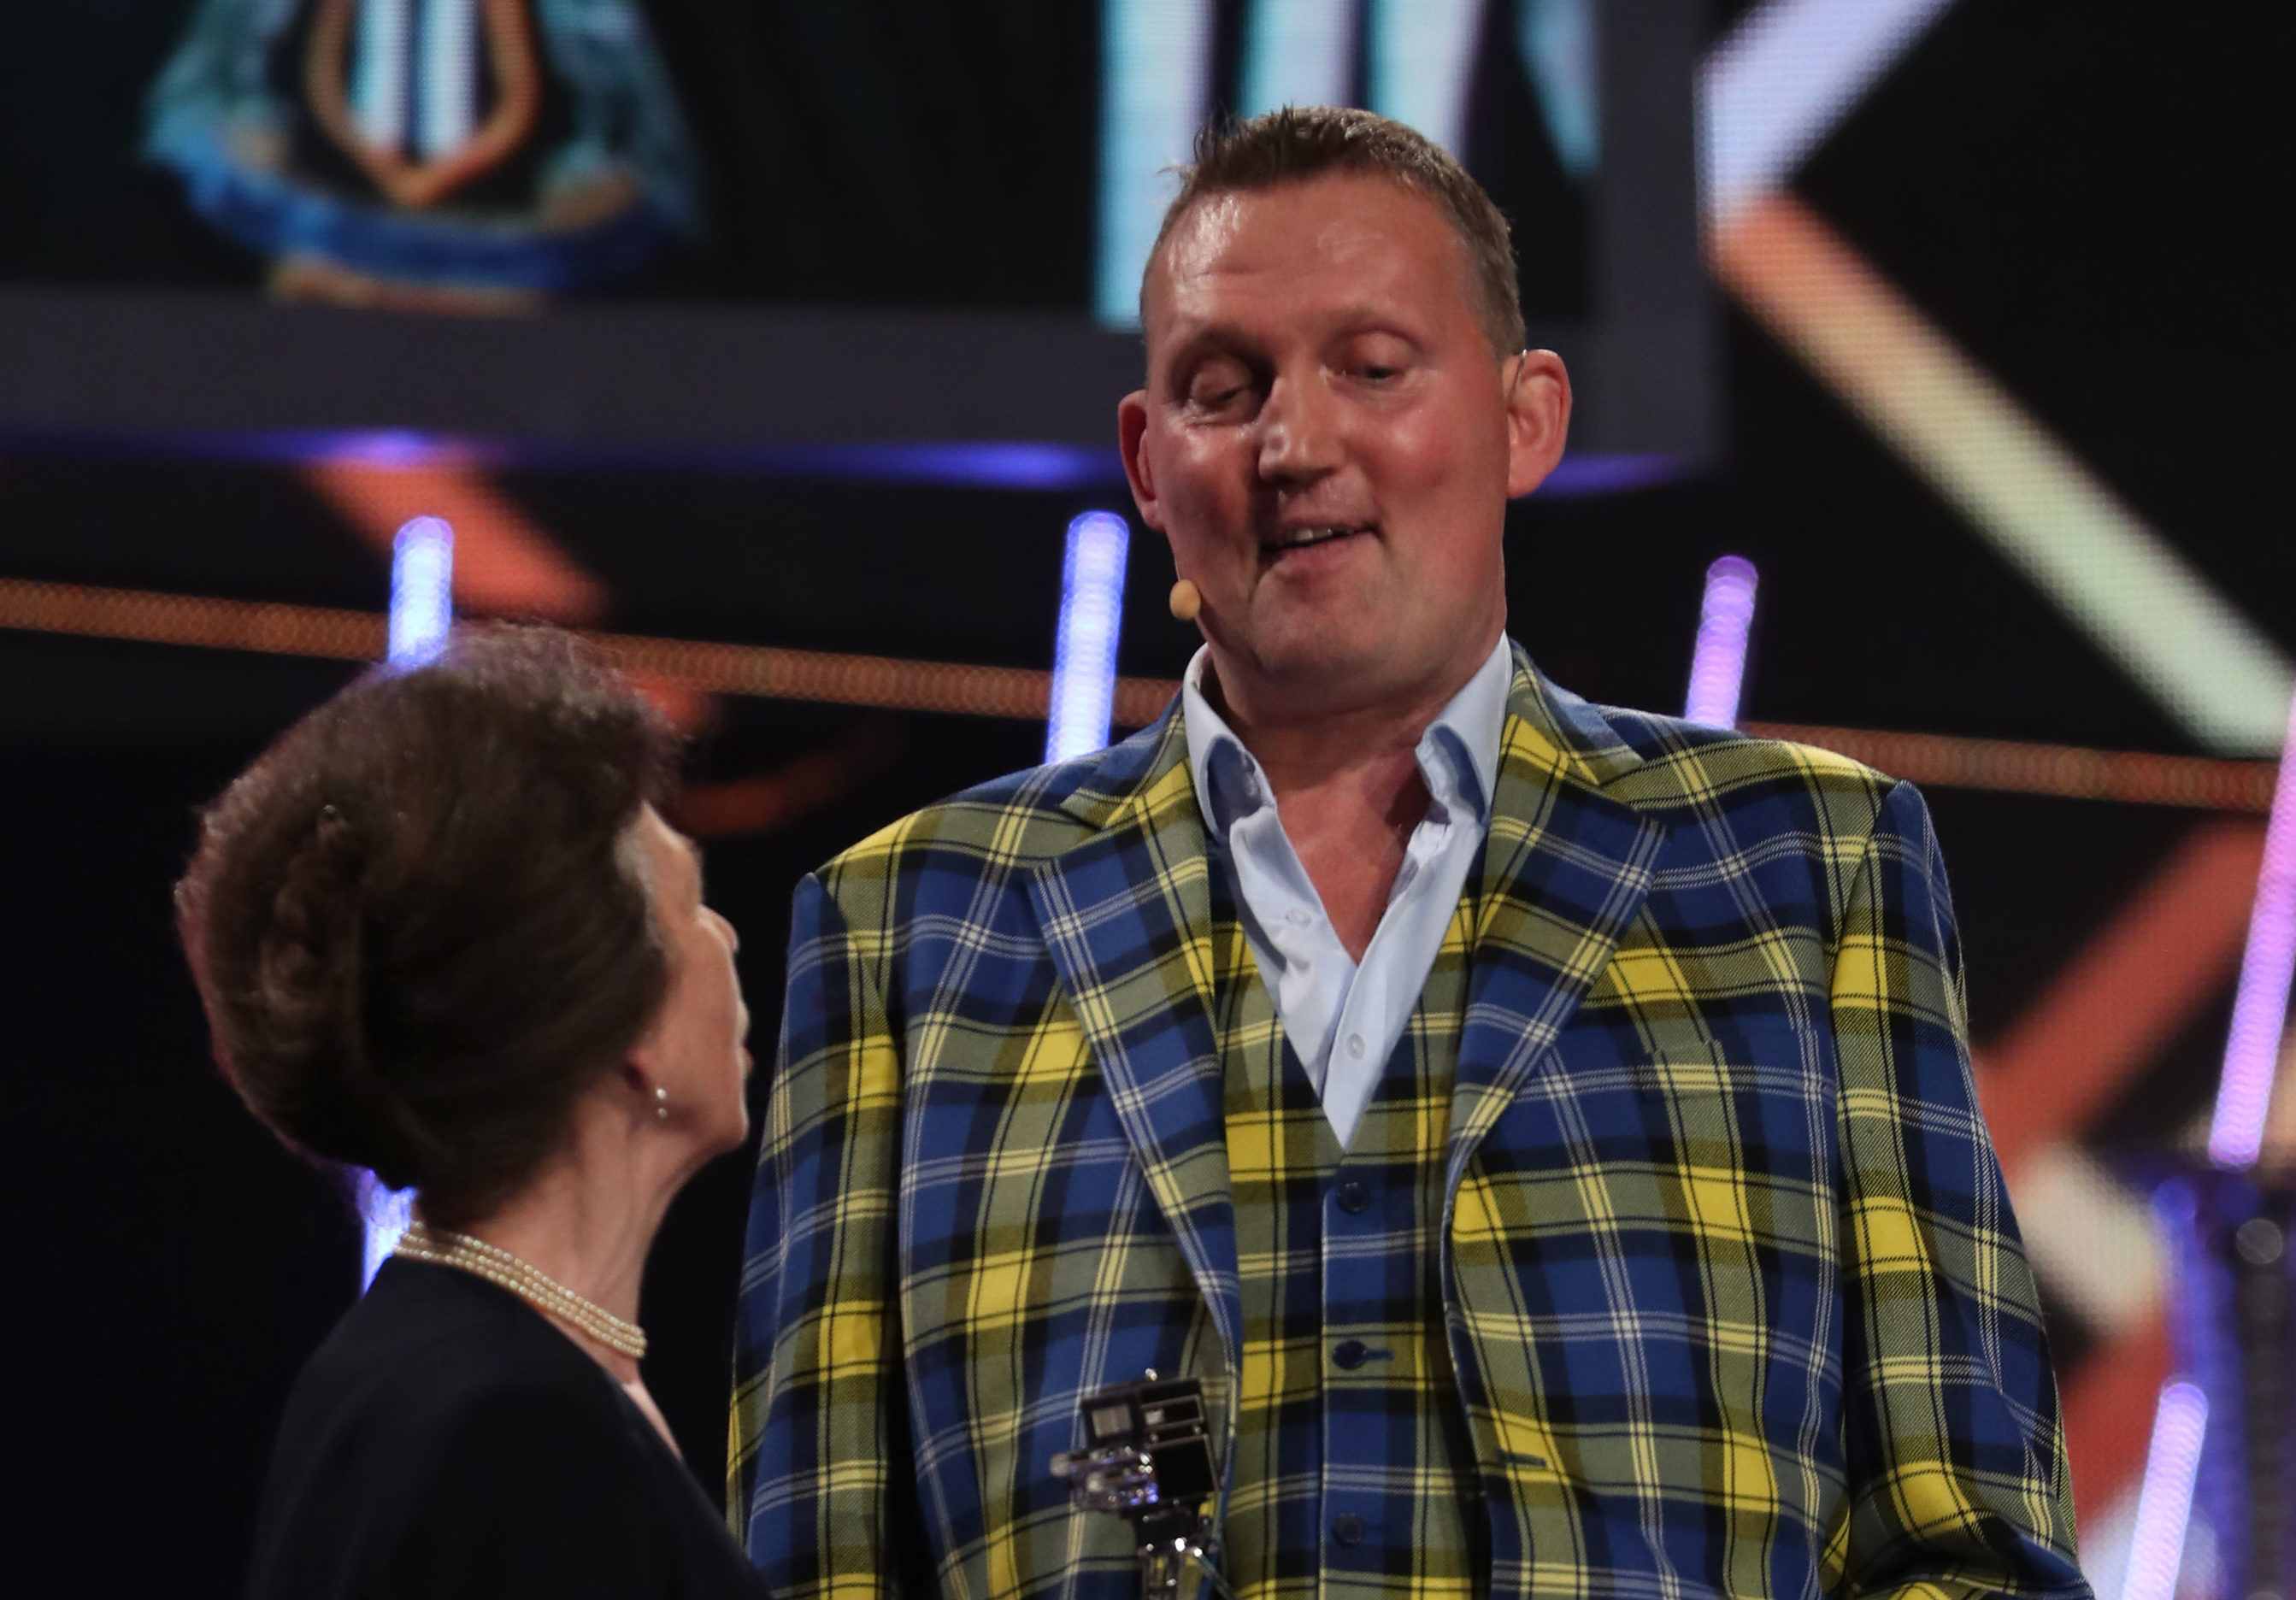 Doddie Weir receiving Helen Roll-on Award from The Princess Royal during the BBC Sports Personality of the Year 2019. Picture: Jane Barlow/PA Wire.